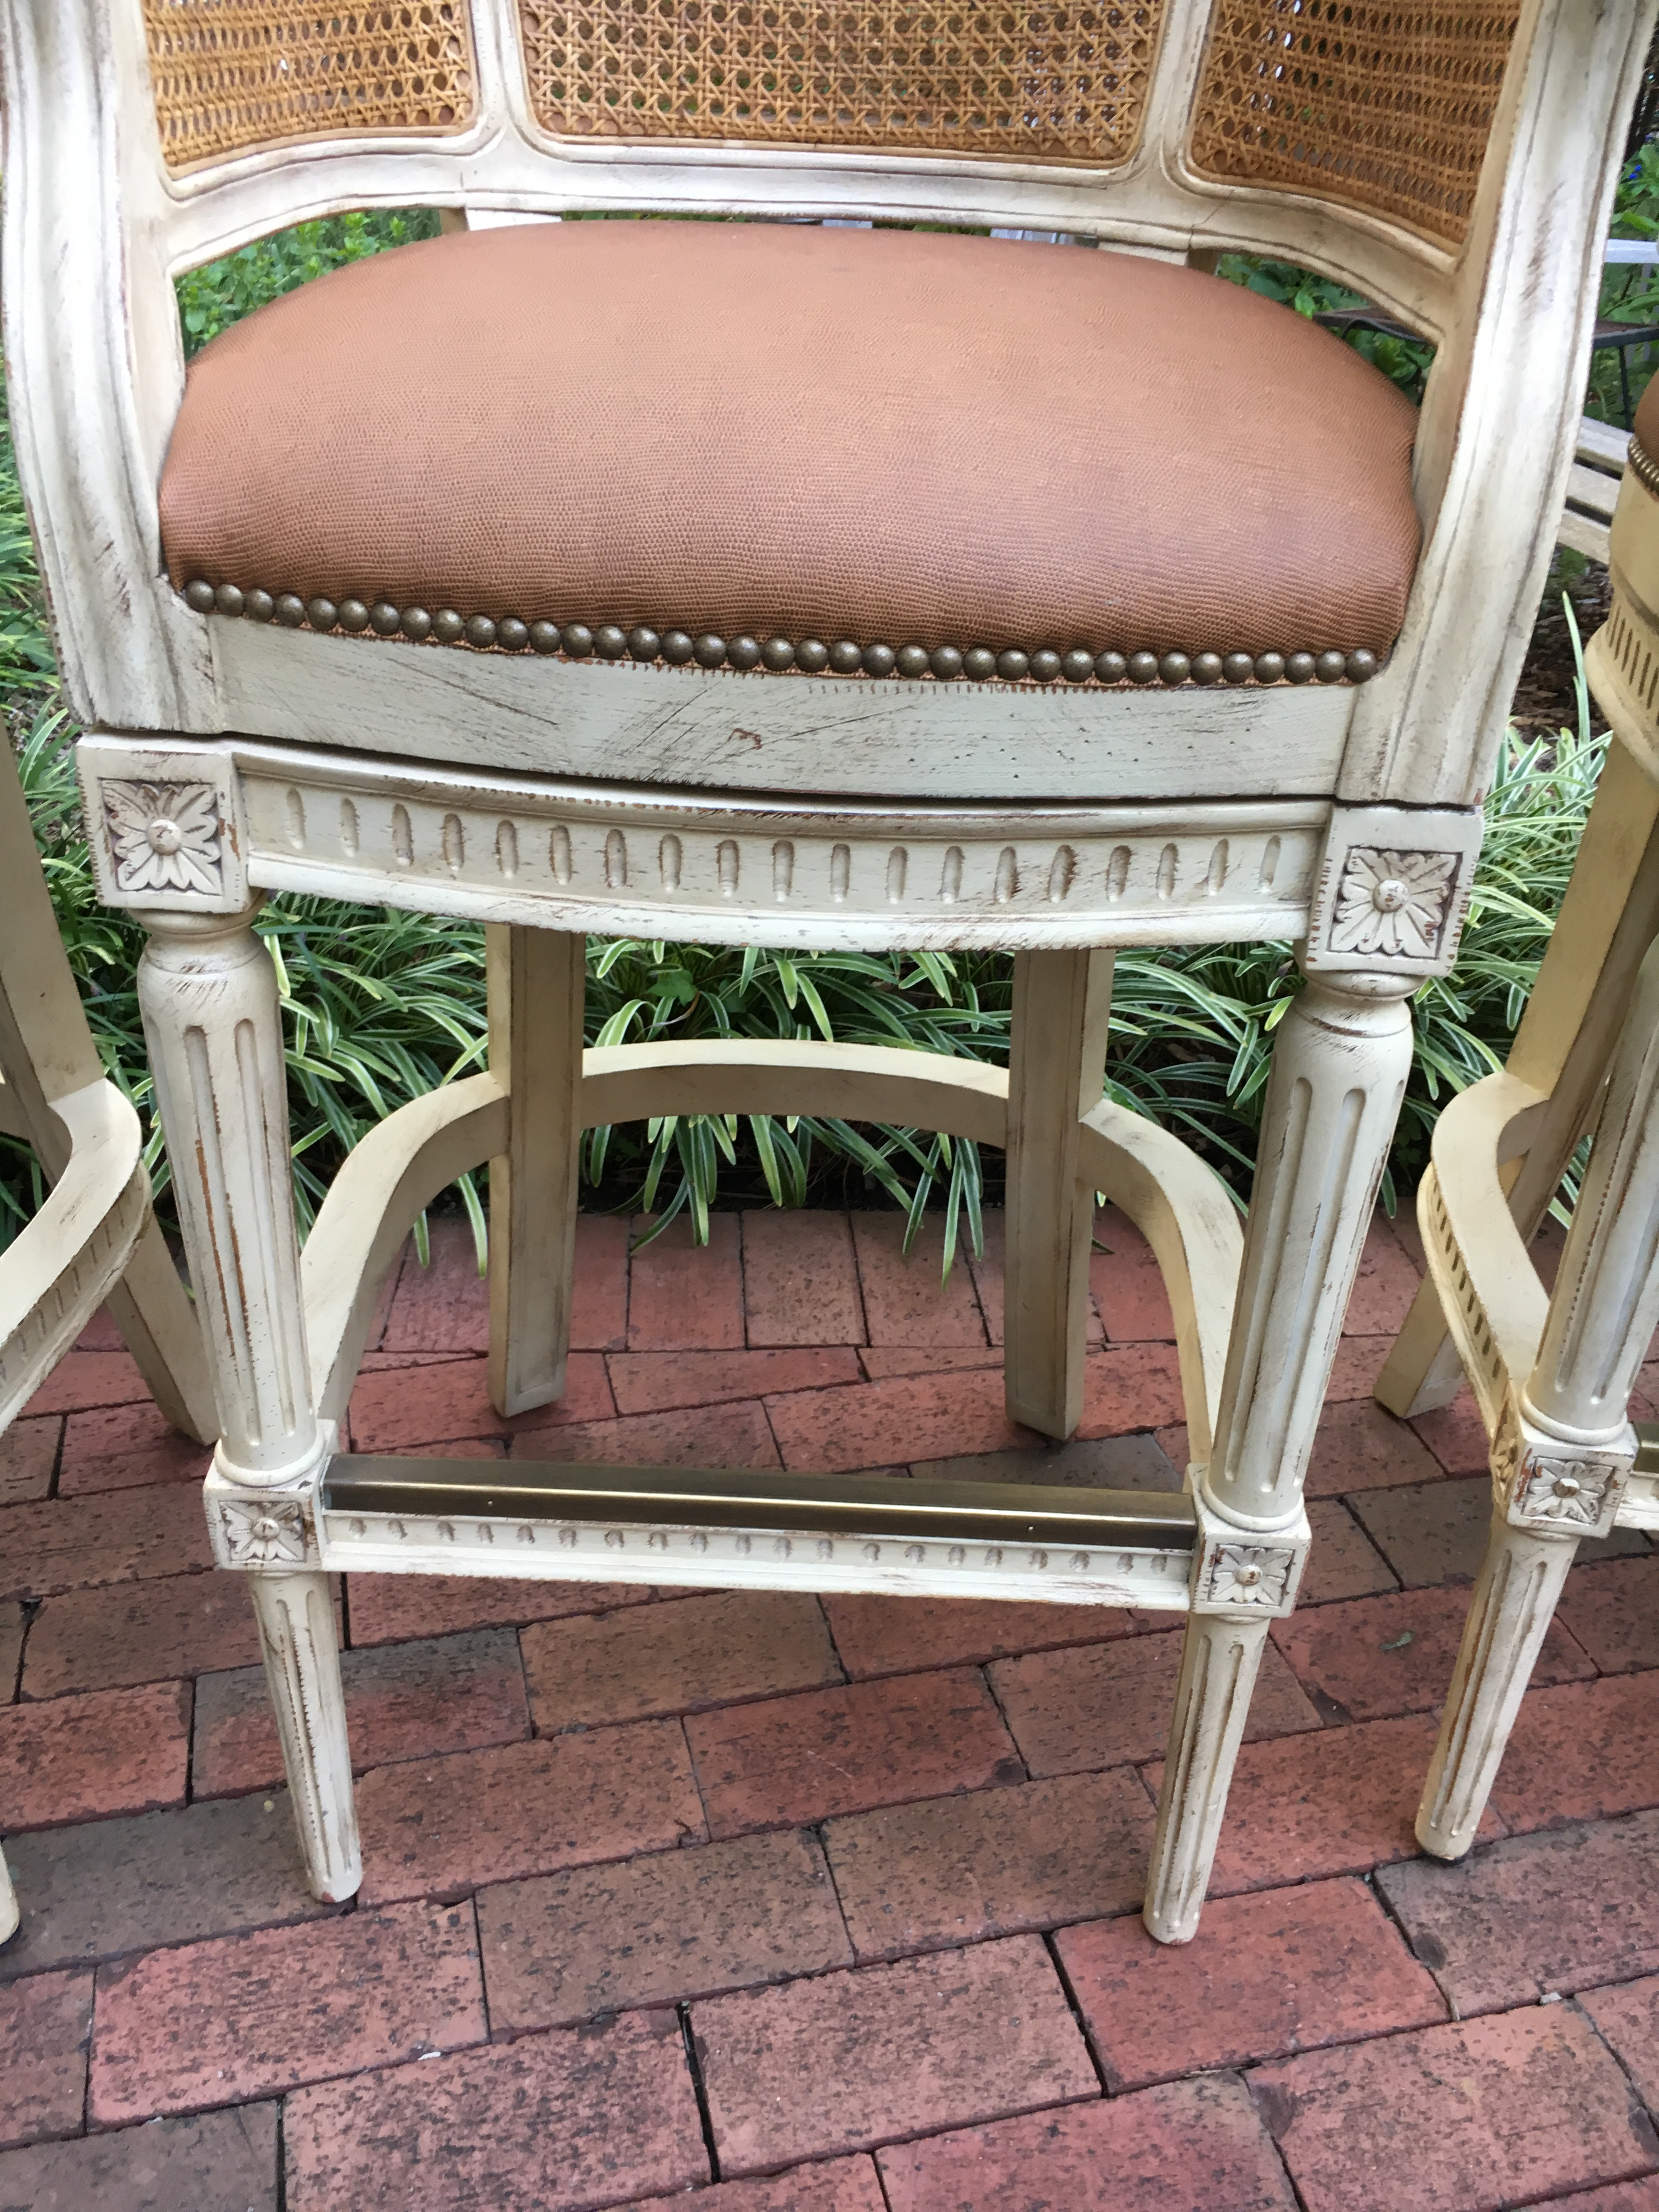 4 Swivel Bar Stools By Pama Of High Point, Nc   Image 4 Of 10 Part 56